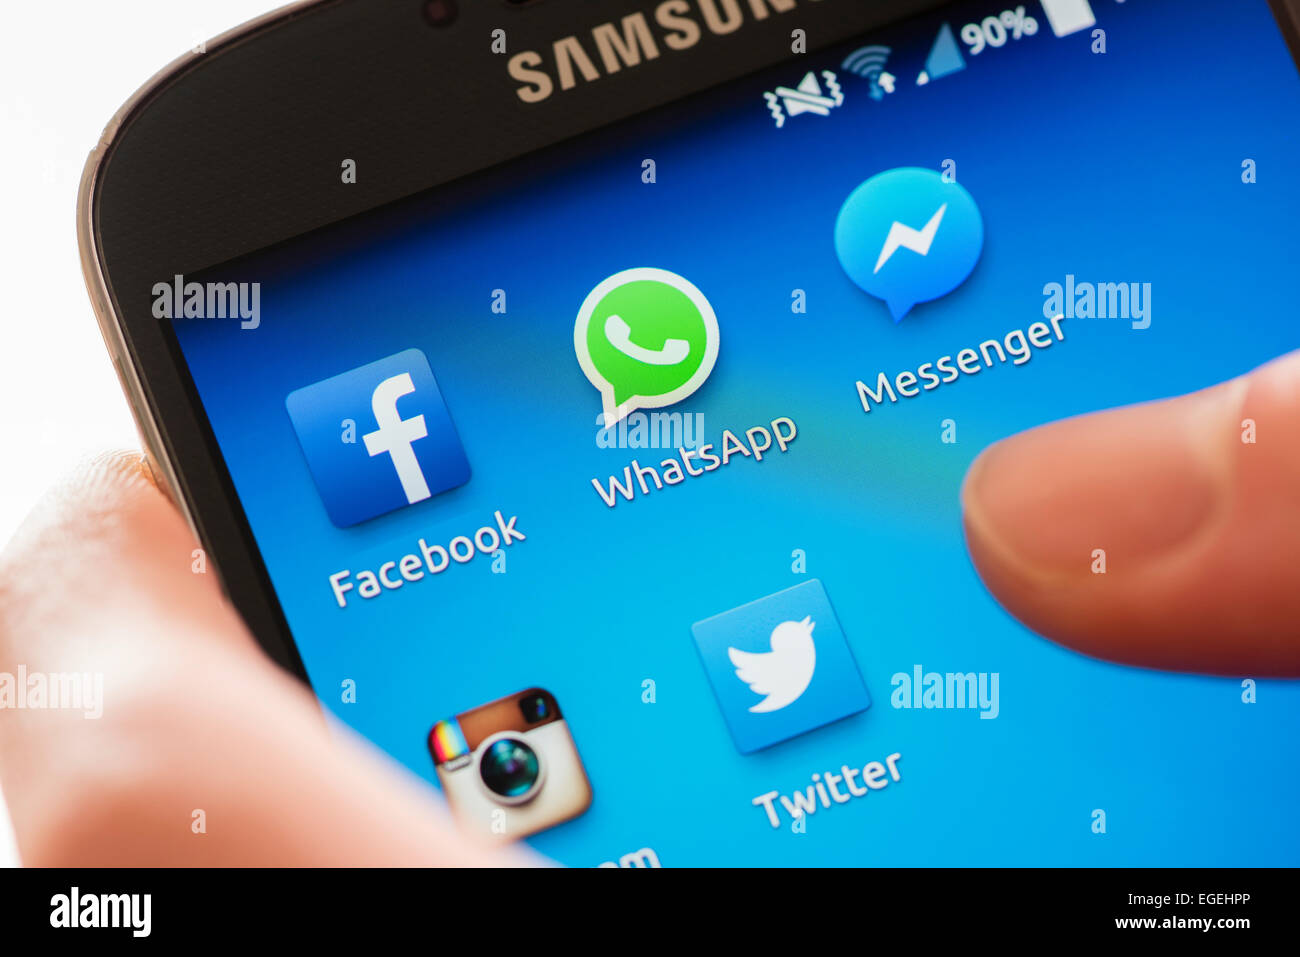 Icon of 'WhatsApp' and other social media communication apps on a Samsung Galaxy smartphone's touchscreen - Stock Image